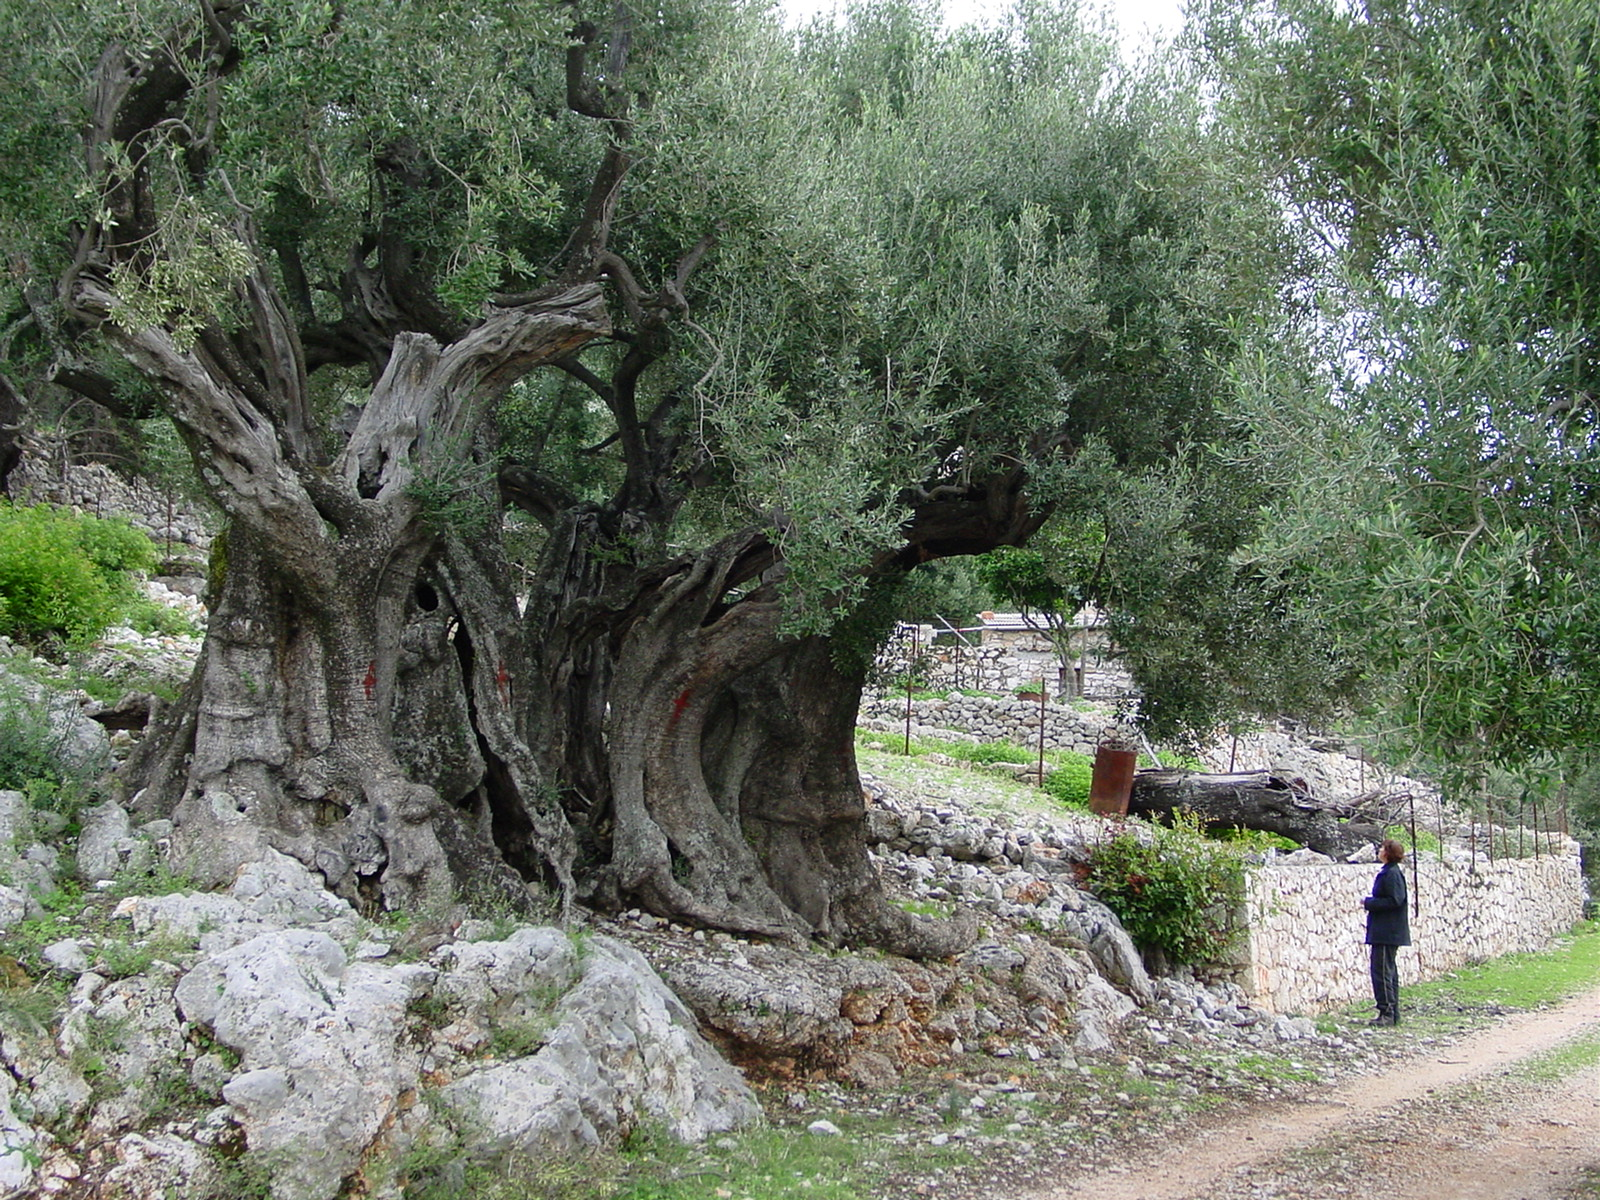 http://upload.wikimedia.org/wikipedia/commons/1/1f/Olivetree_1500yrs.jpg